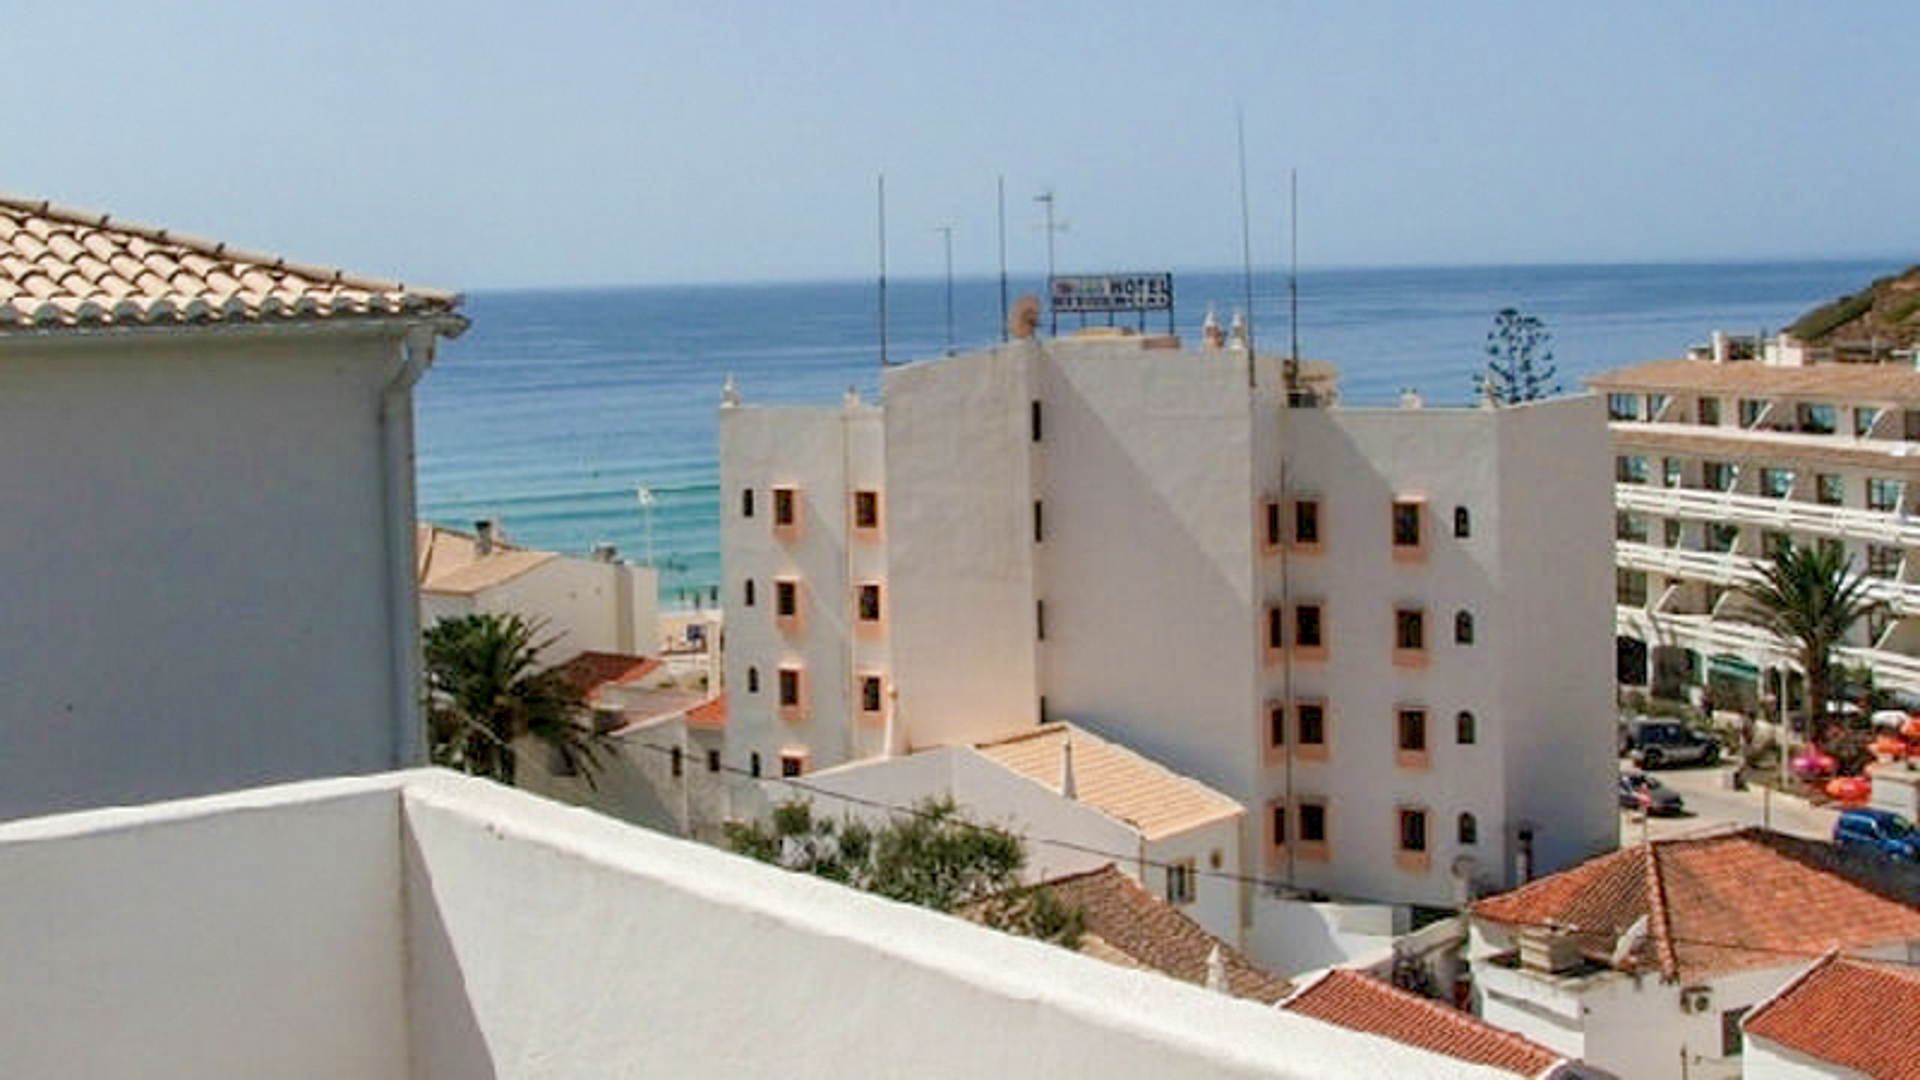 Converted villa divided into 3 apt with sea views & fantastic rental potential, Salema | S2270